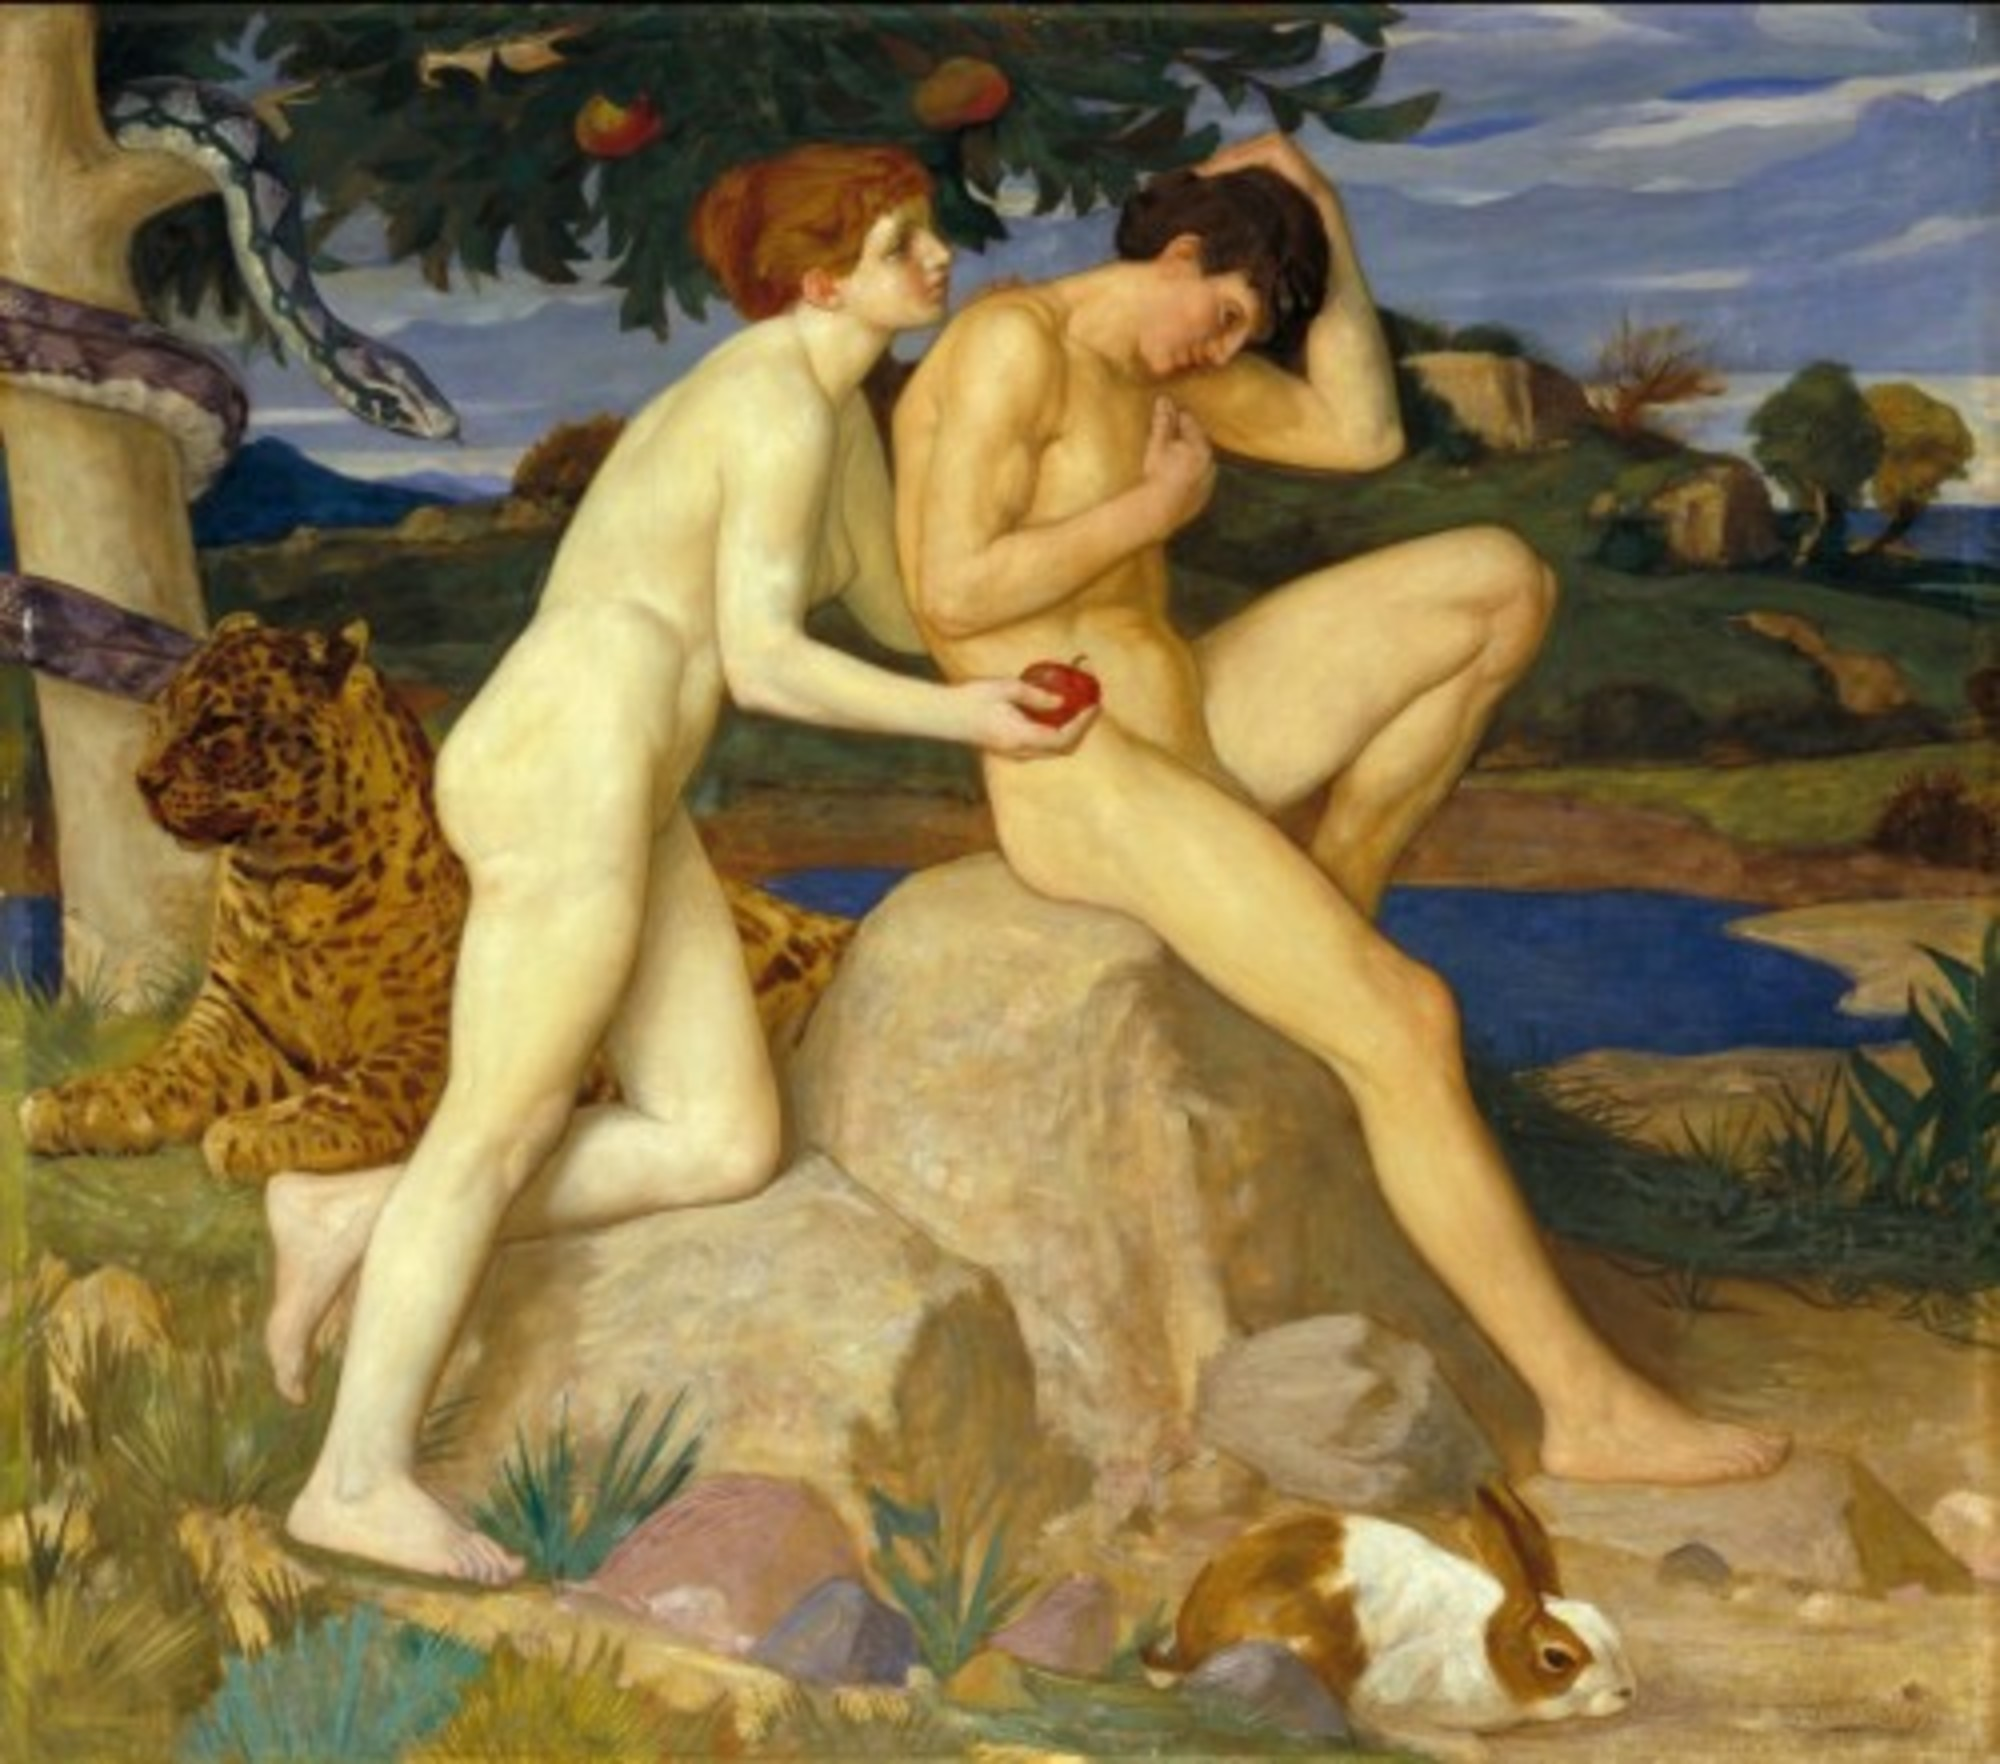 William-Strang---The-Temptation-Tate-Britain.jpg